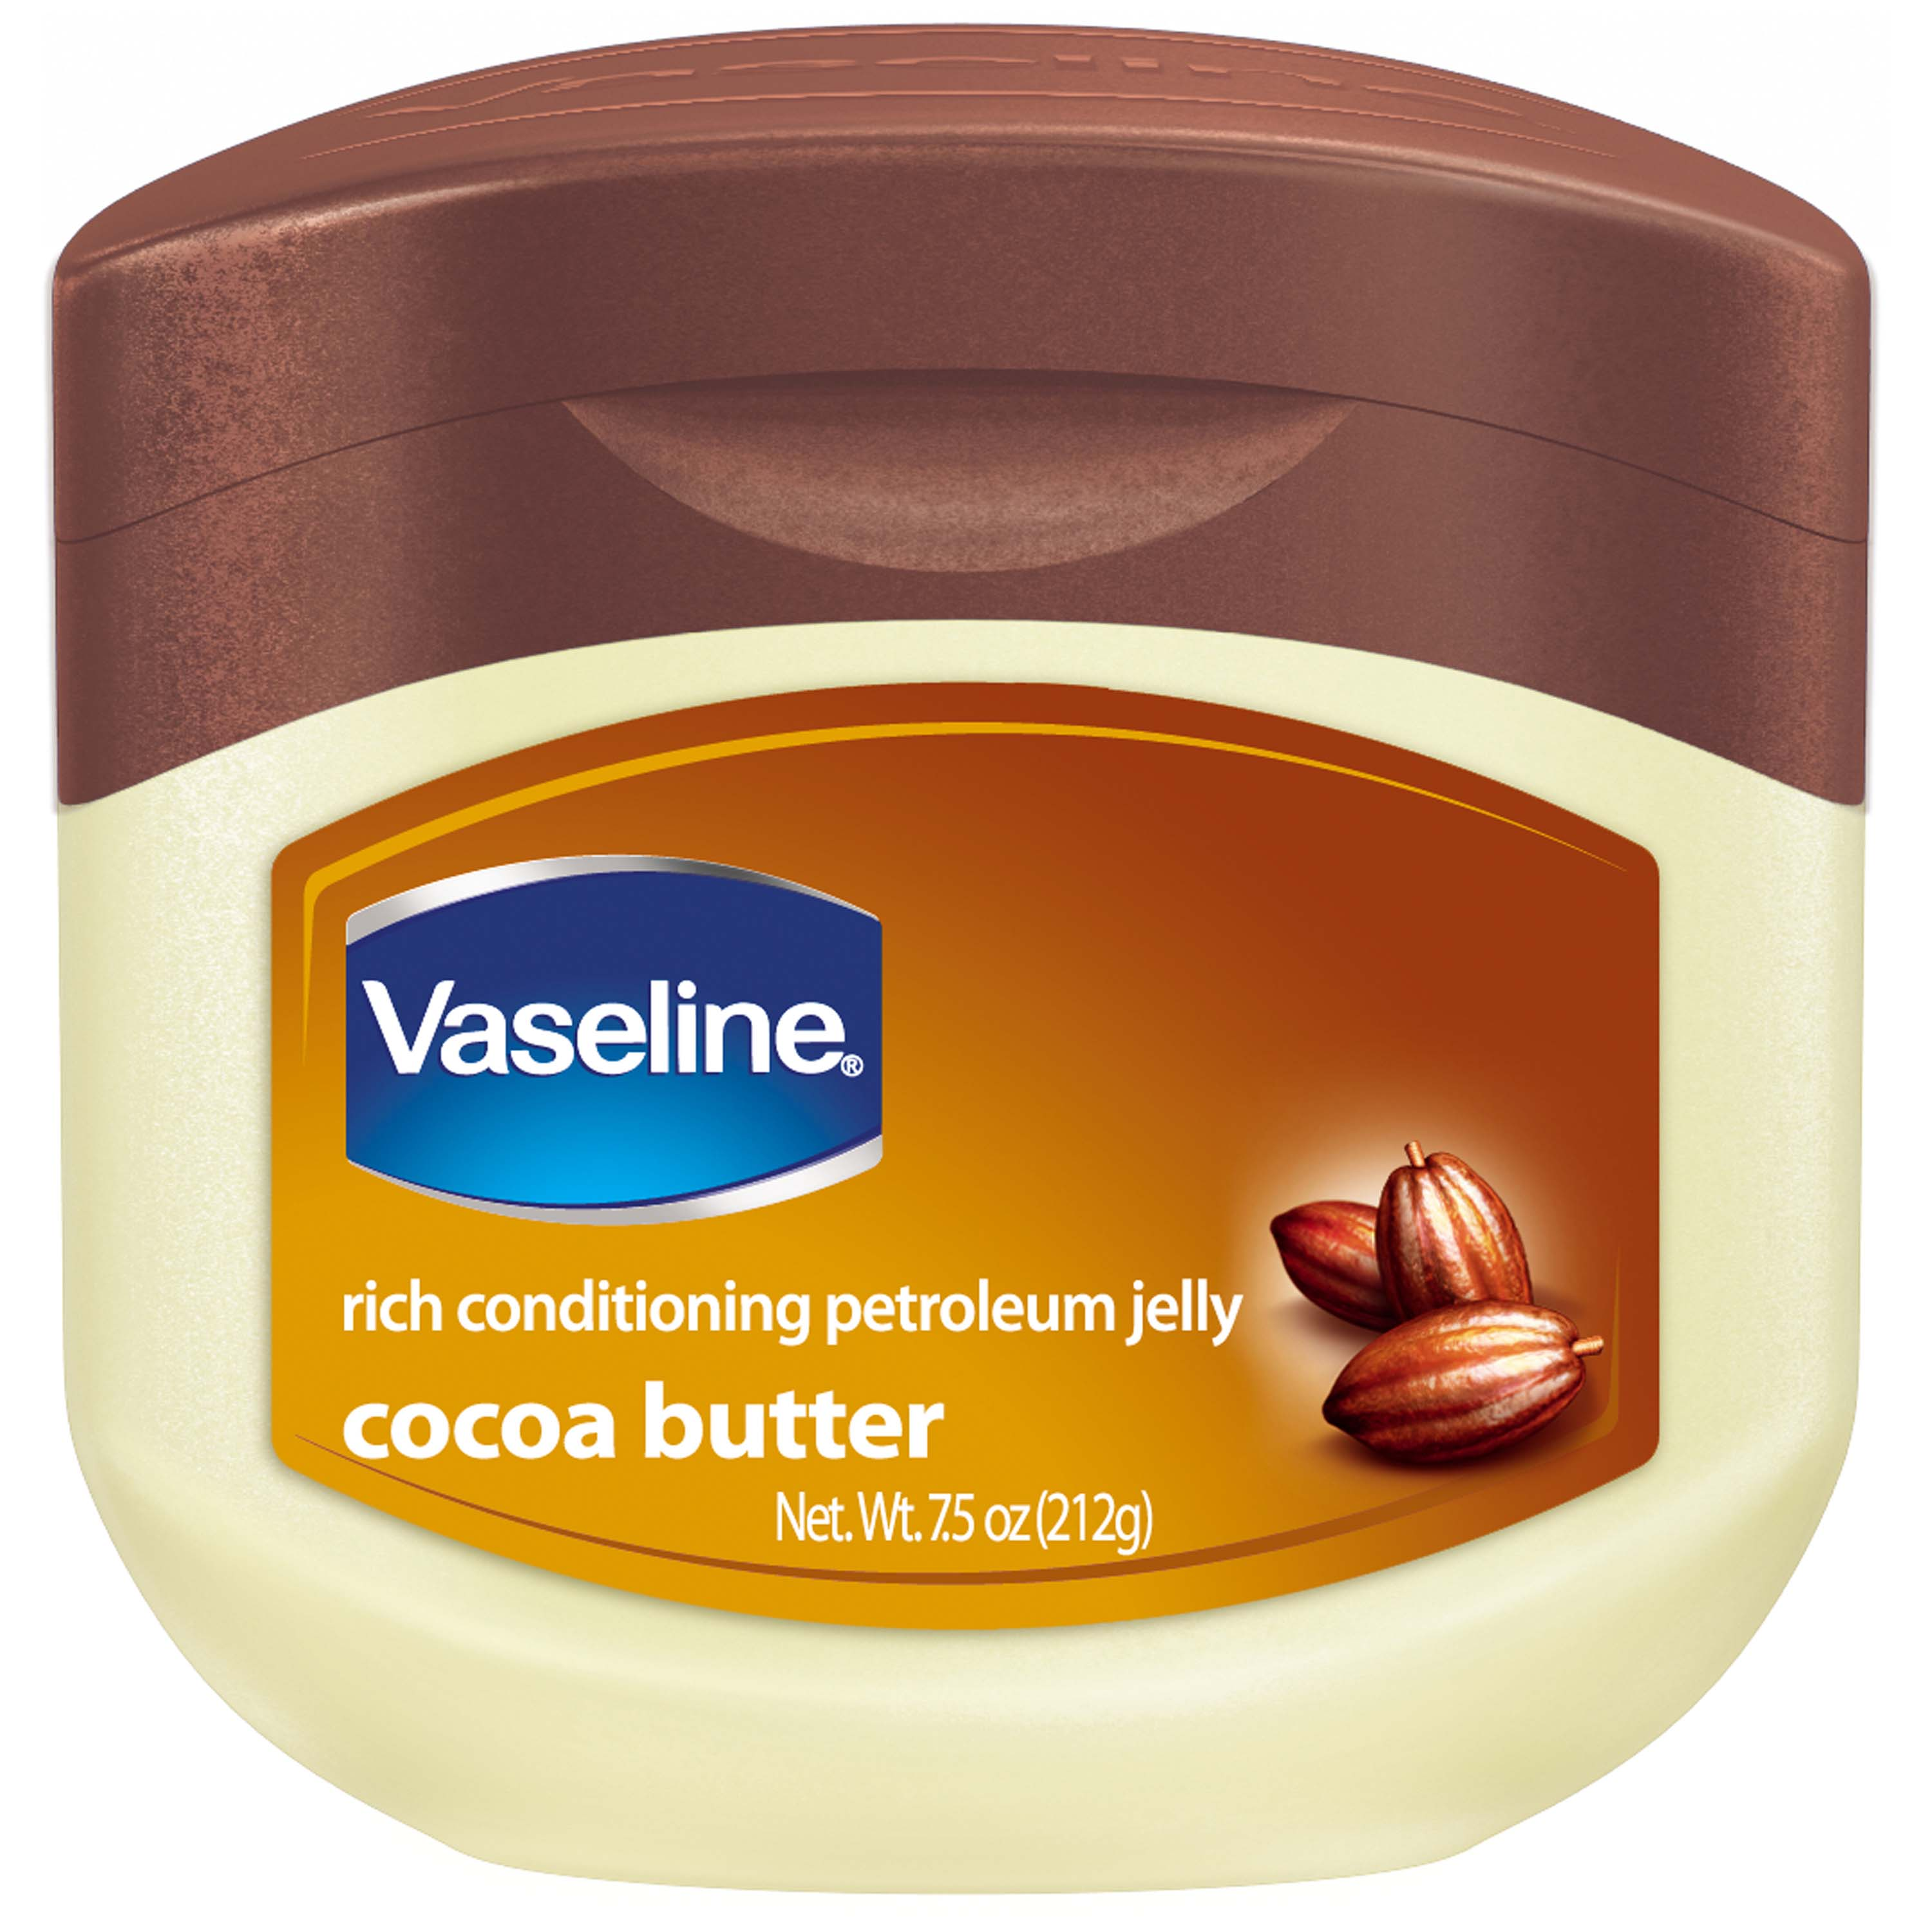 Vaseline Cocoa Butter Petroleum Jelly, 7.5 oz